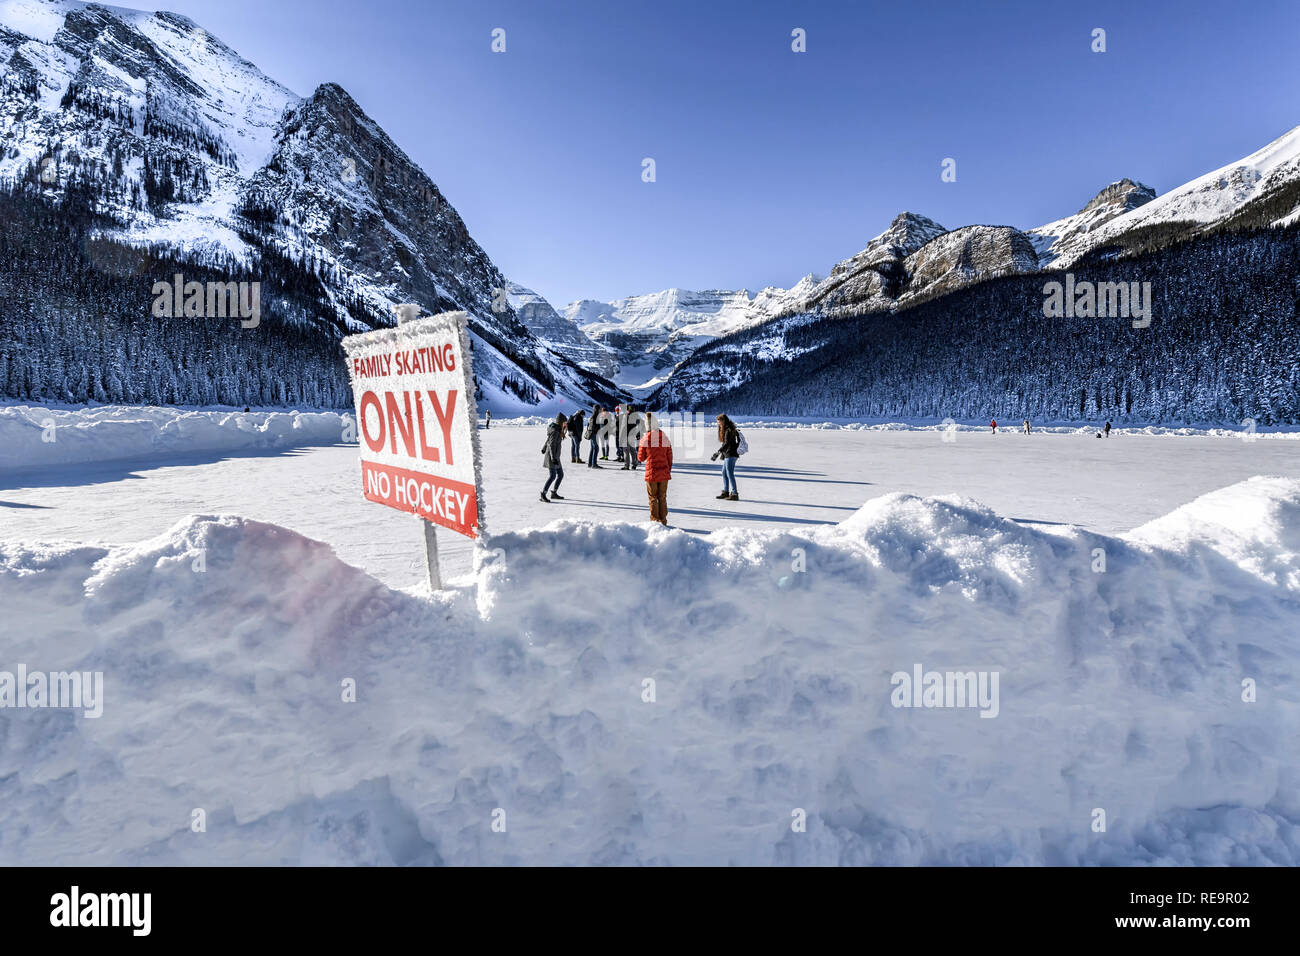 winter-ice-skating-at-lake-louise-banff-alberta-canada-RE9R02.jpg